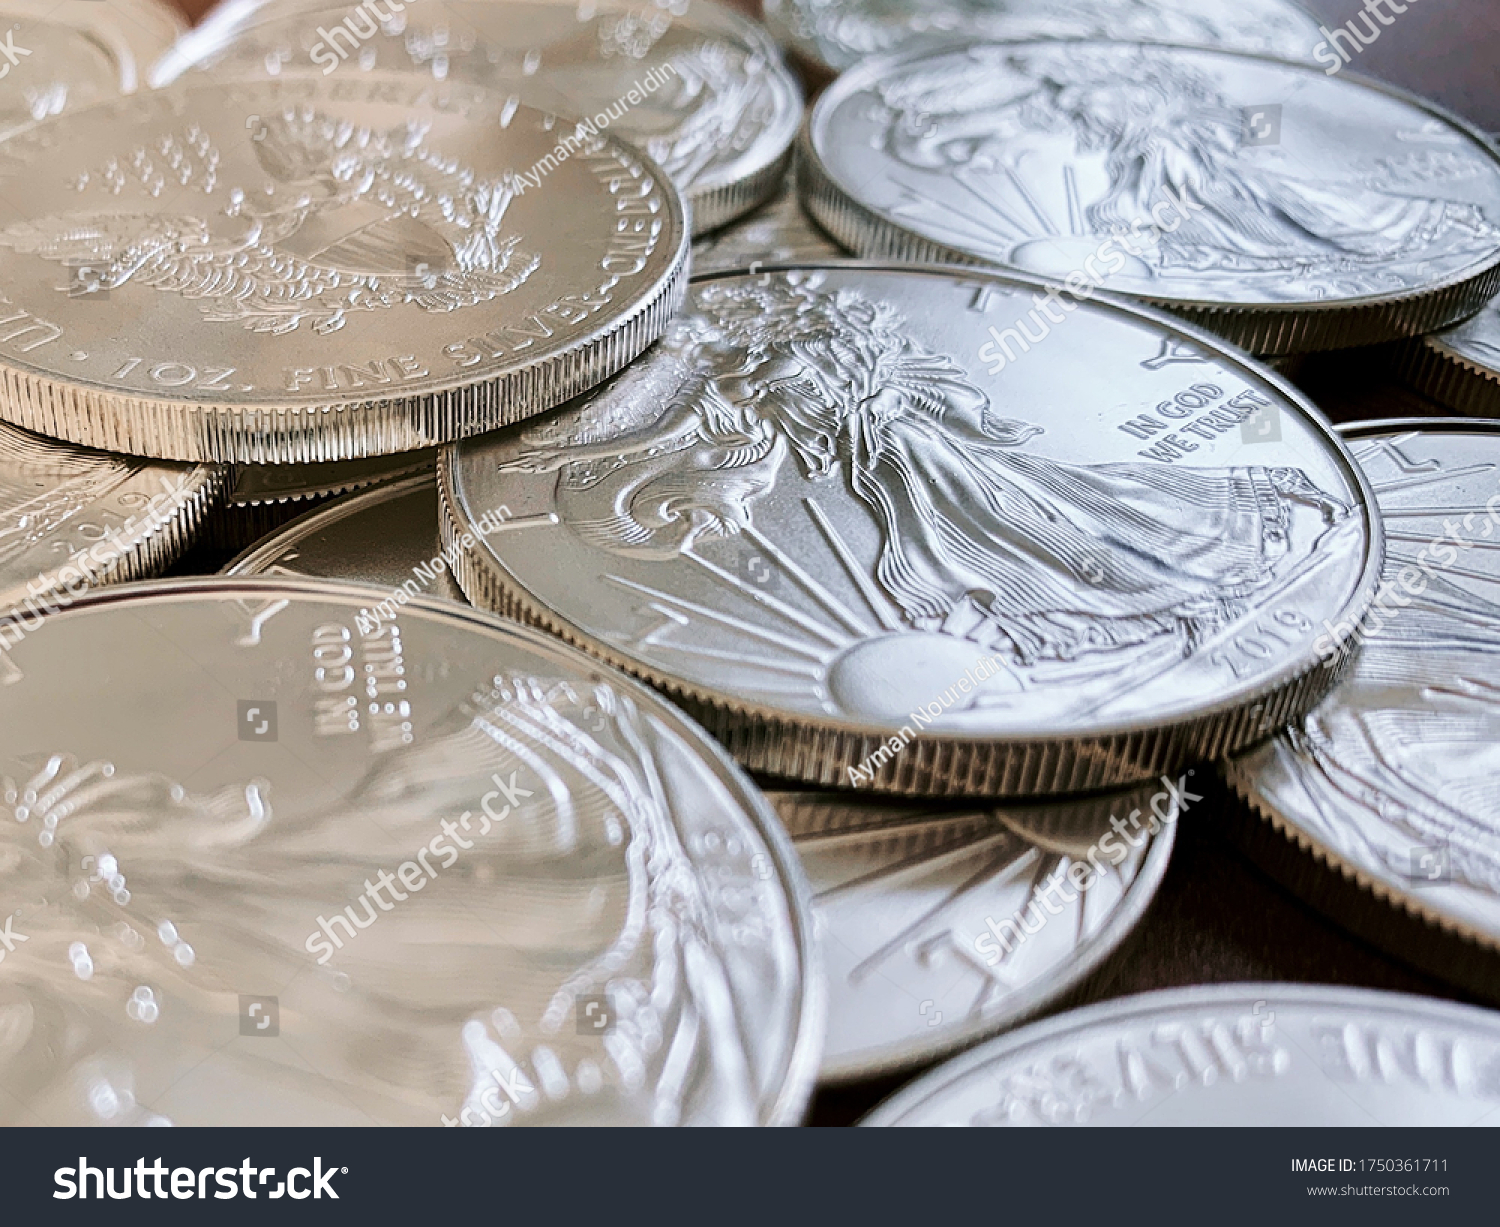 Set of American silver eagle coins, highlight the lady liberty side of the silver coin #1750361711